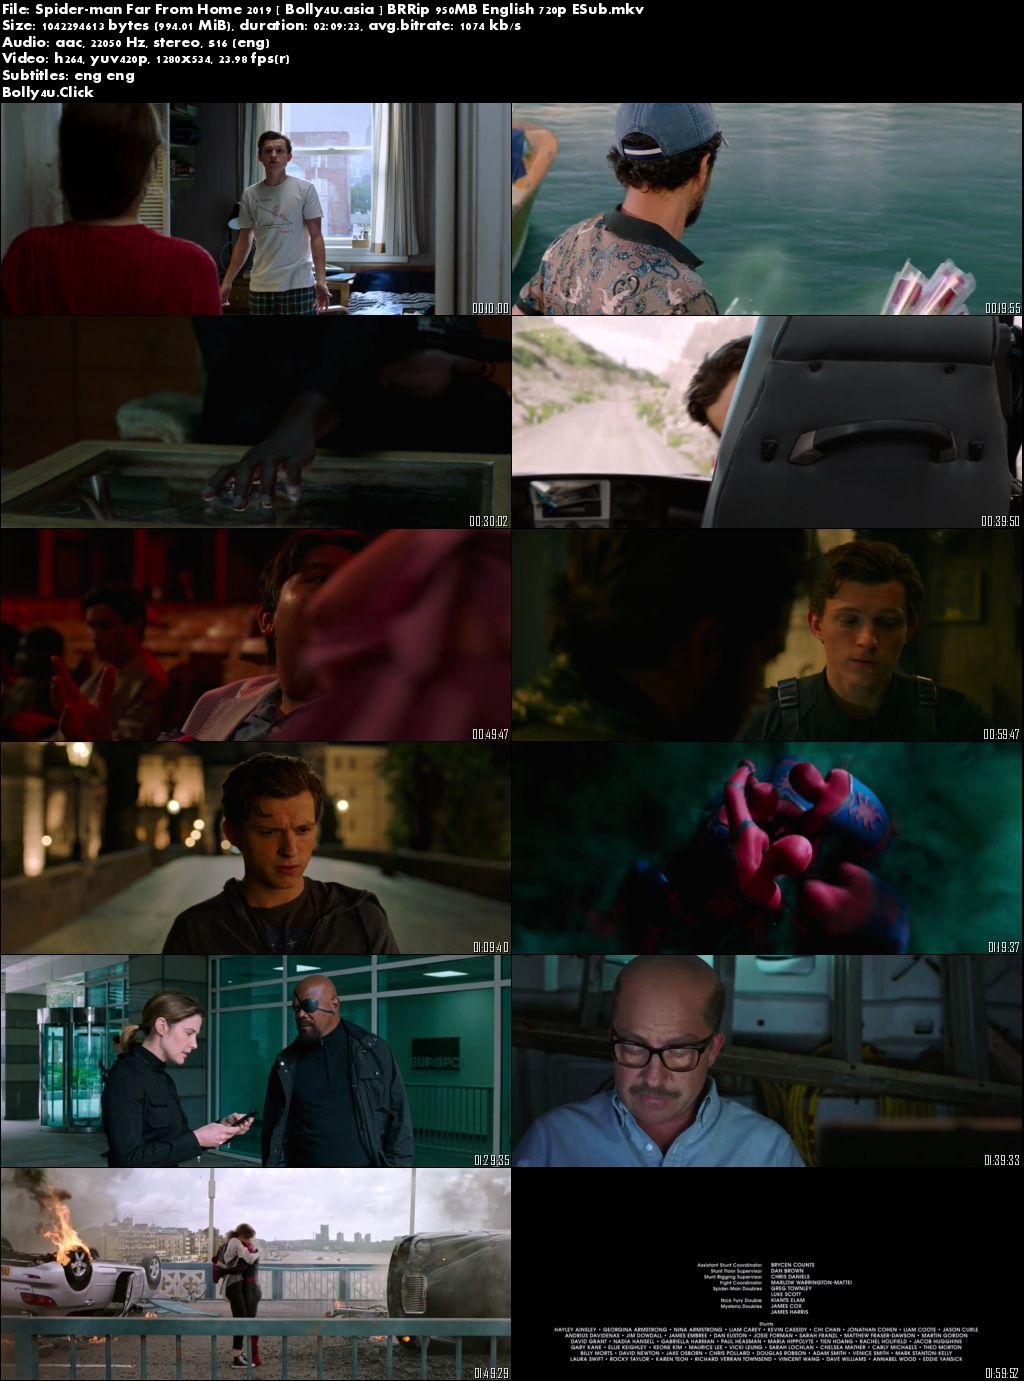 Spider-man Far From Home 2019 BRRip 300Mb English 480p ESub Download